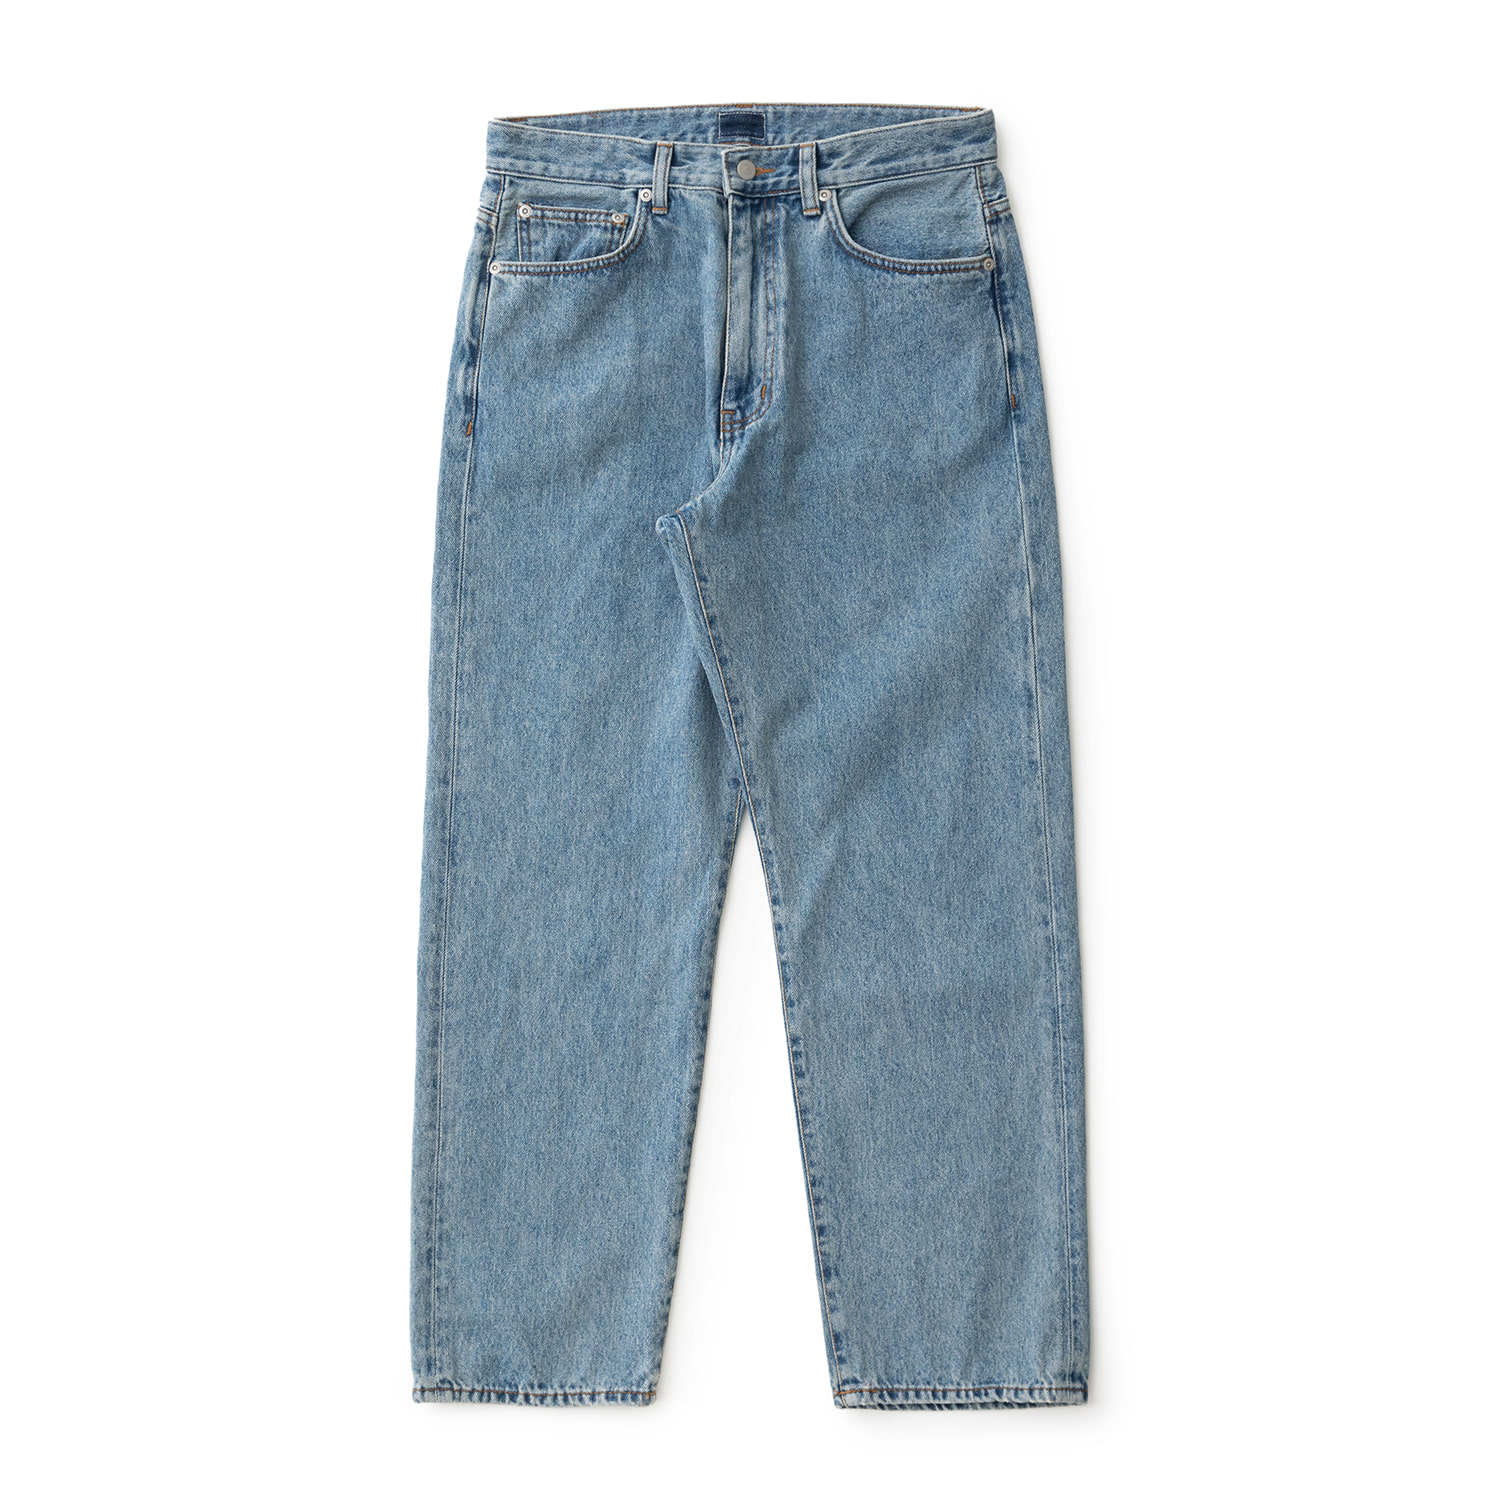 21SS Study Denim Type 4 (Stone Wash)